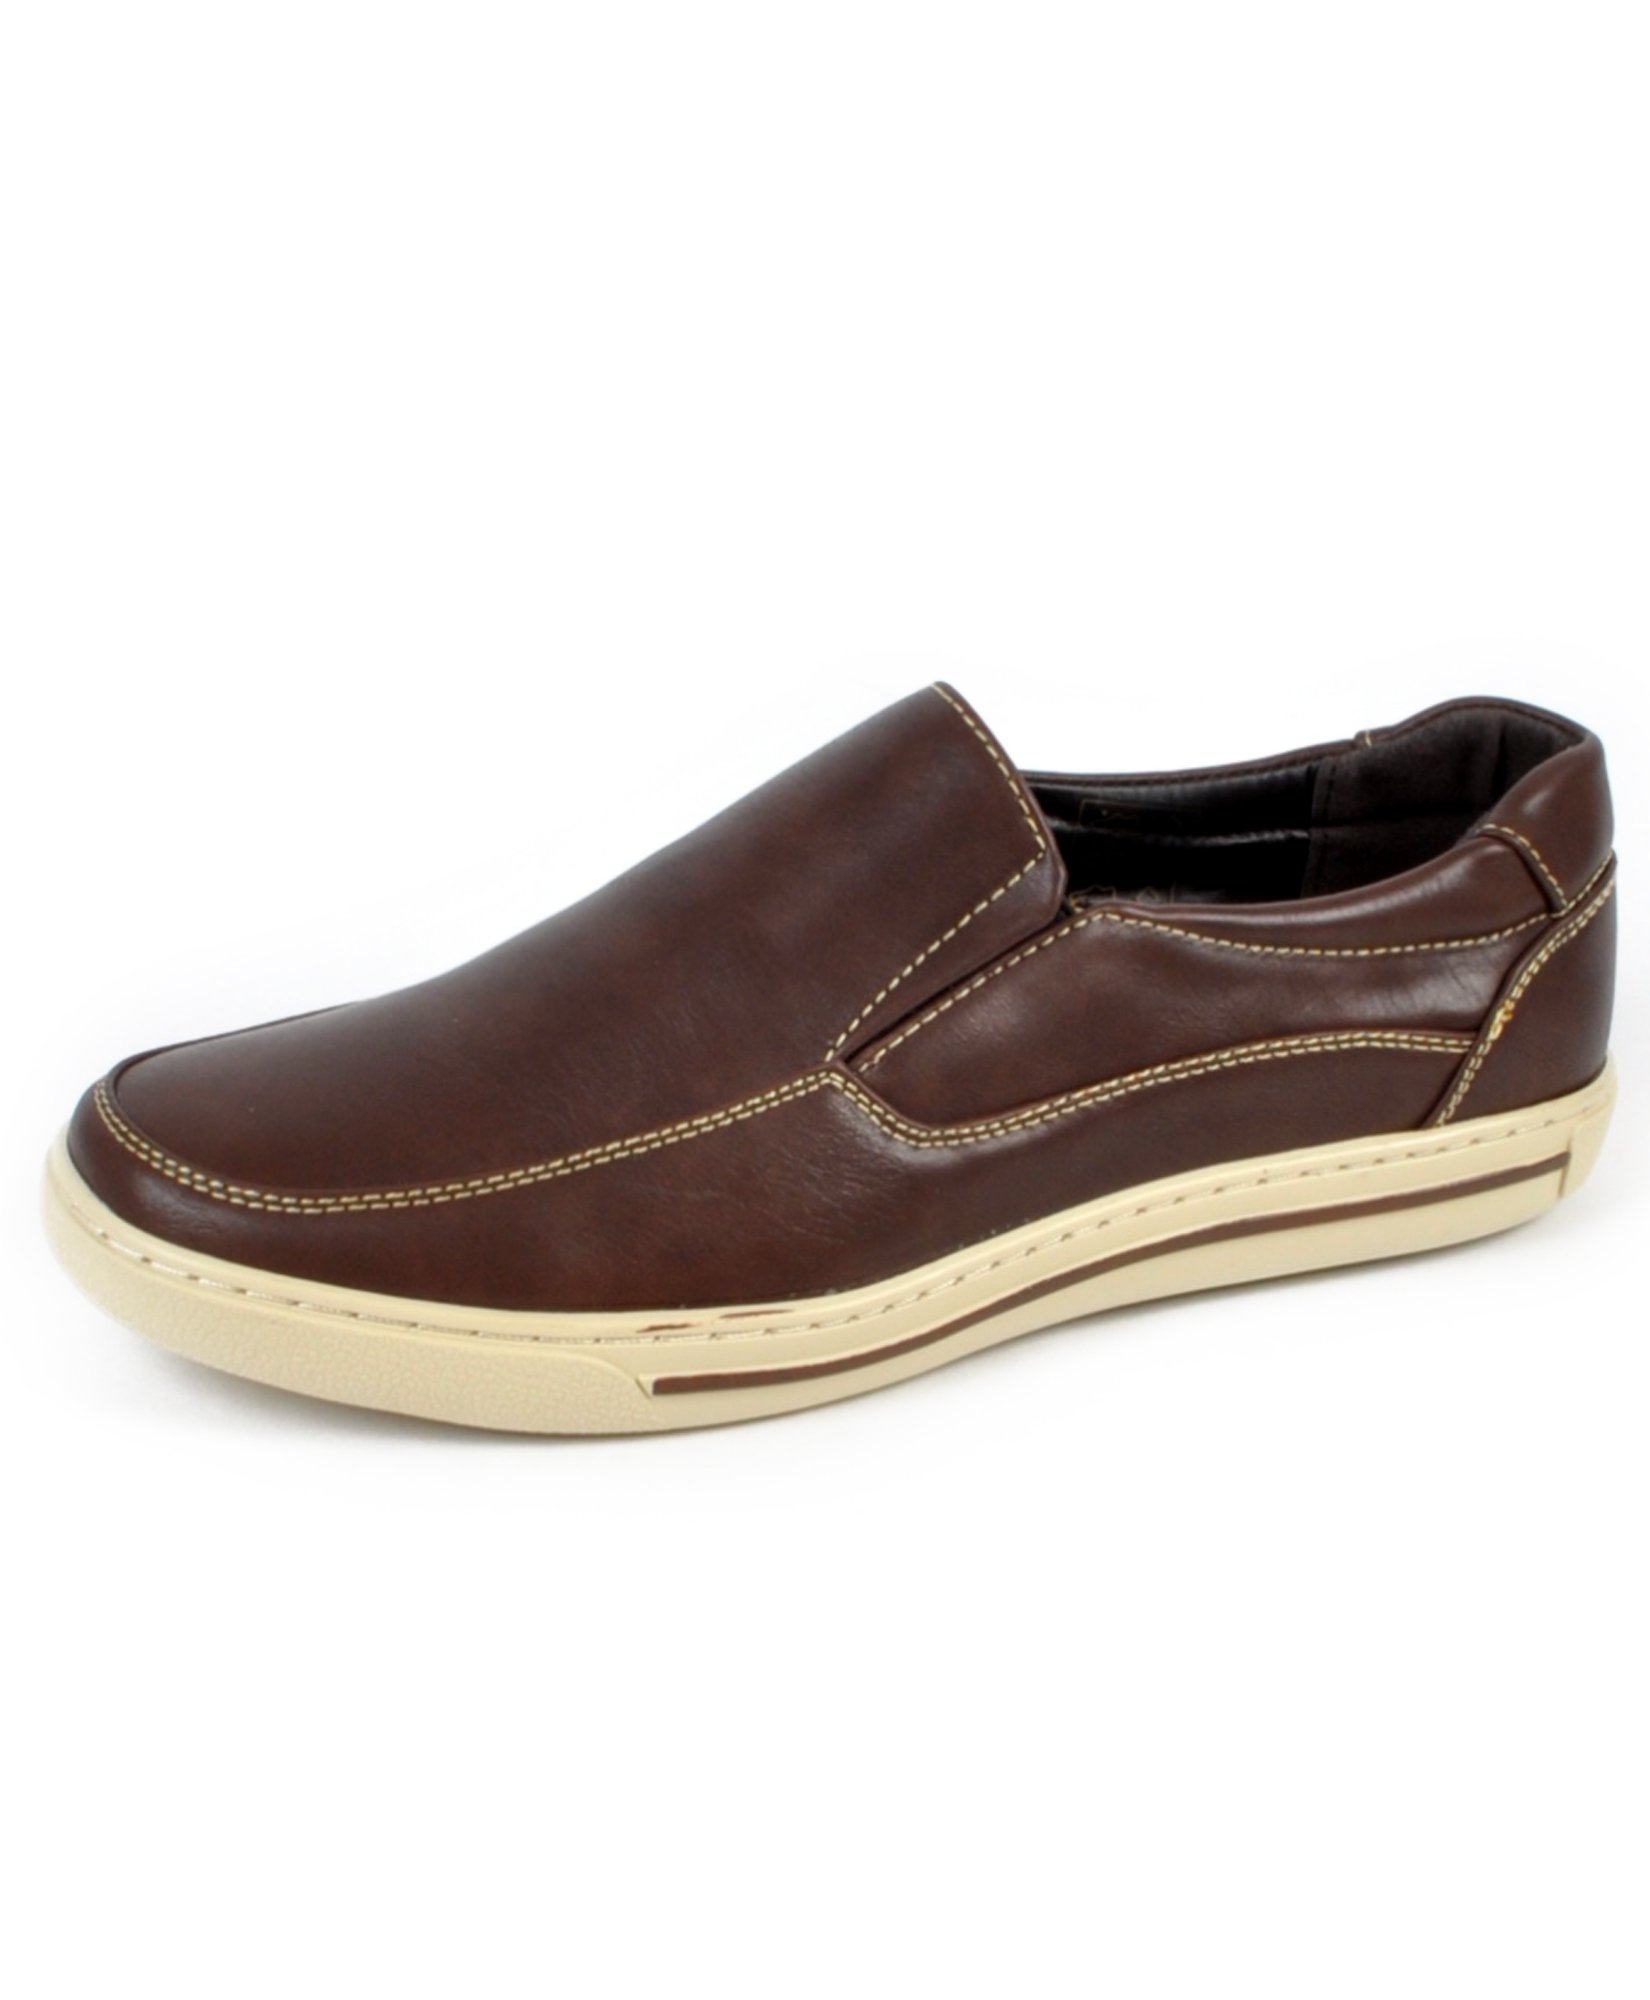 Men's Comfort Stride Loafers (9.5C, Brown) by boxed-gifts (Image #1)